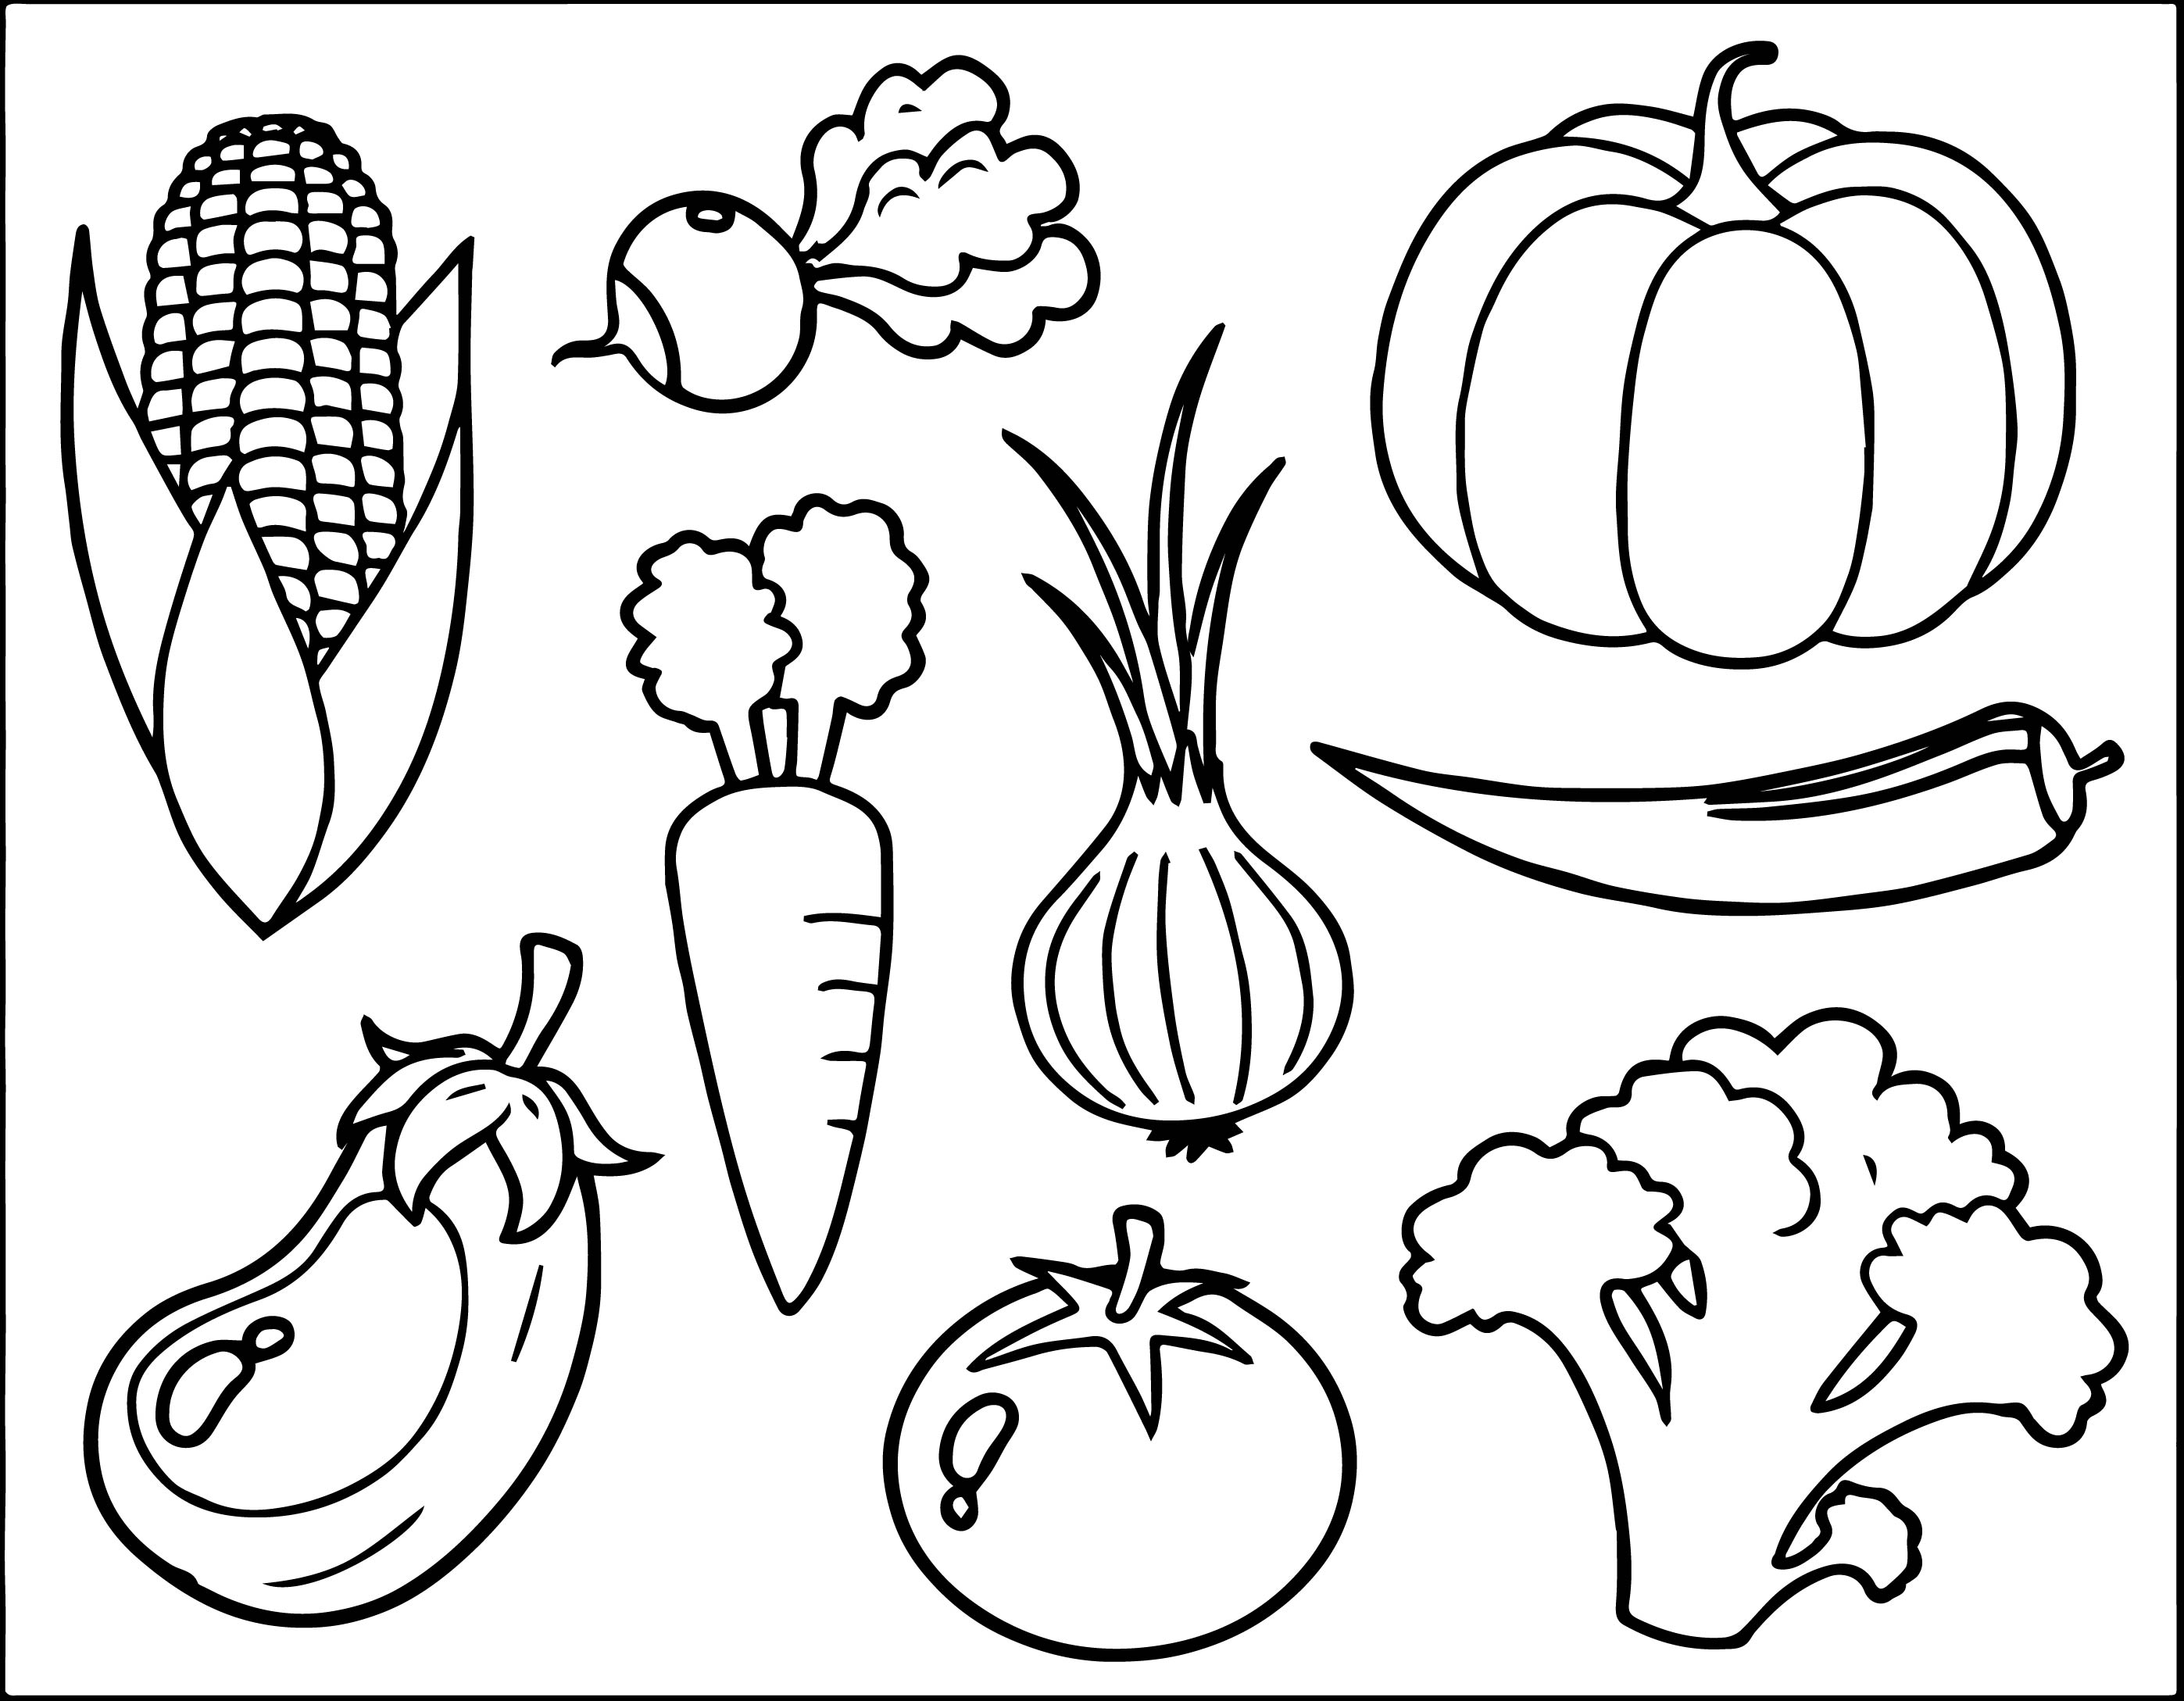 printable fruit coloring pages cherry coloring pages download and print cherry coloring printable coloring pages fruit